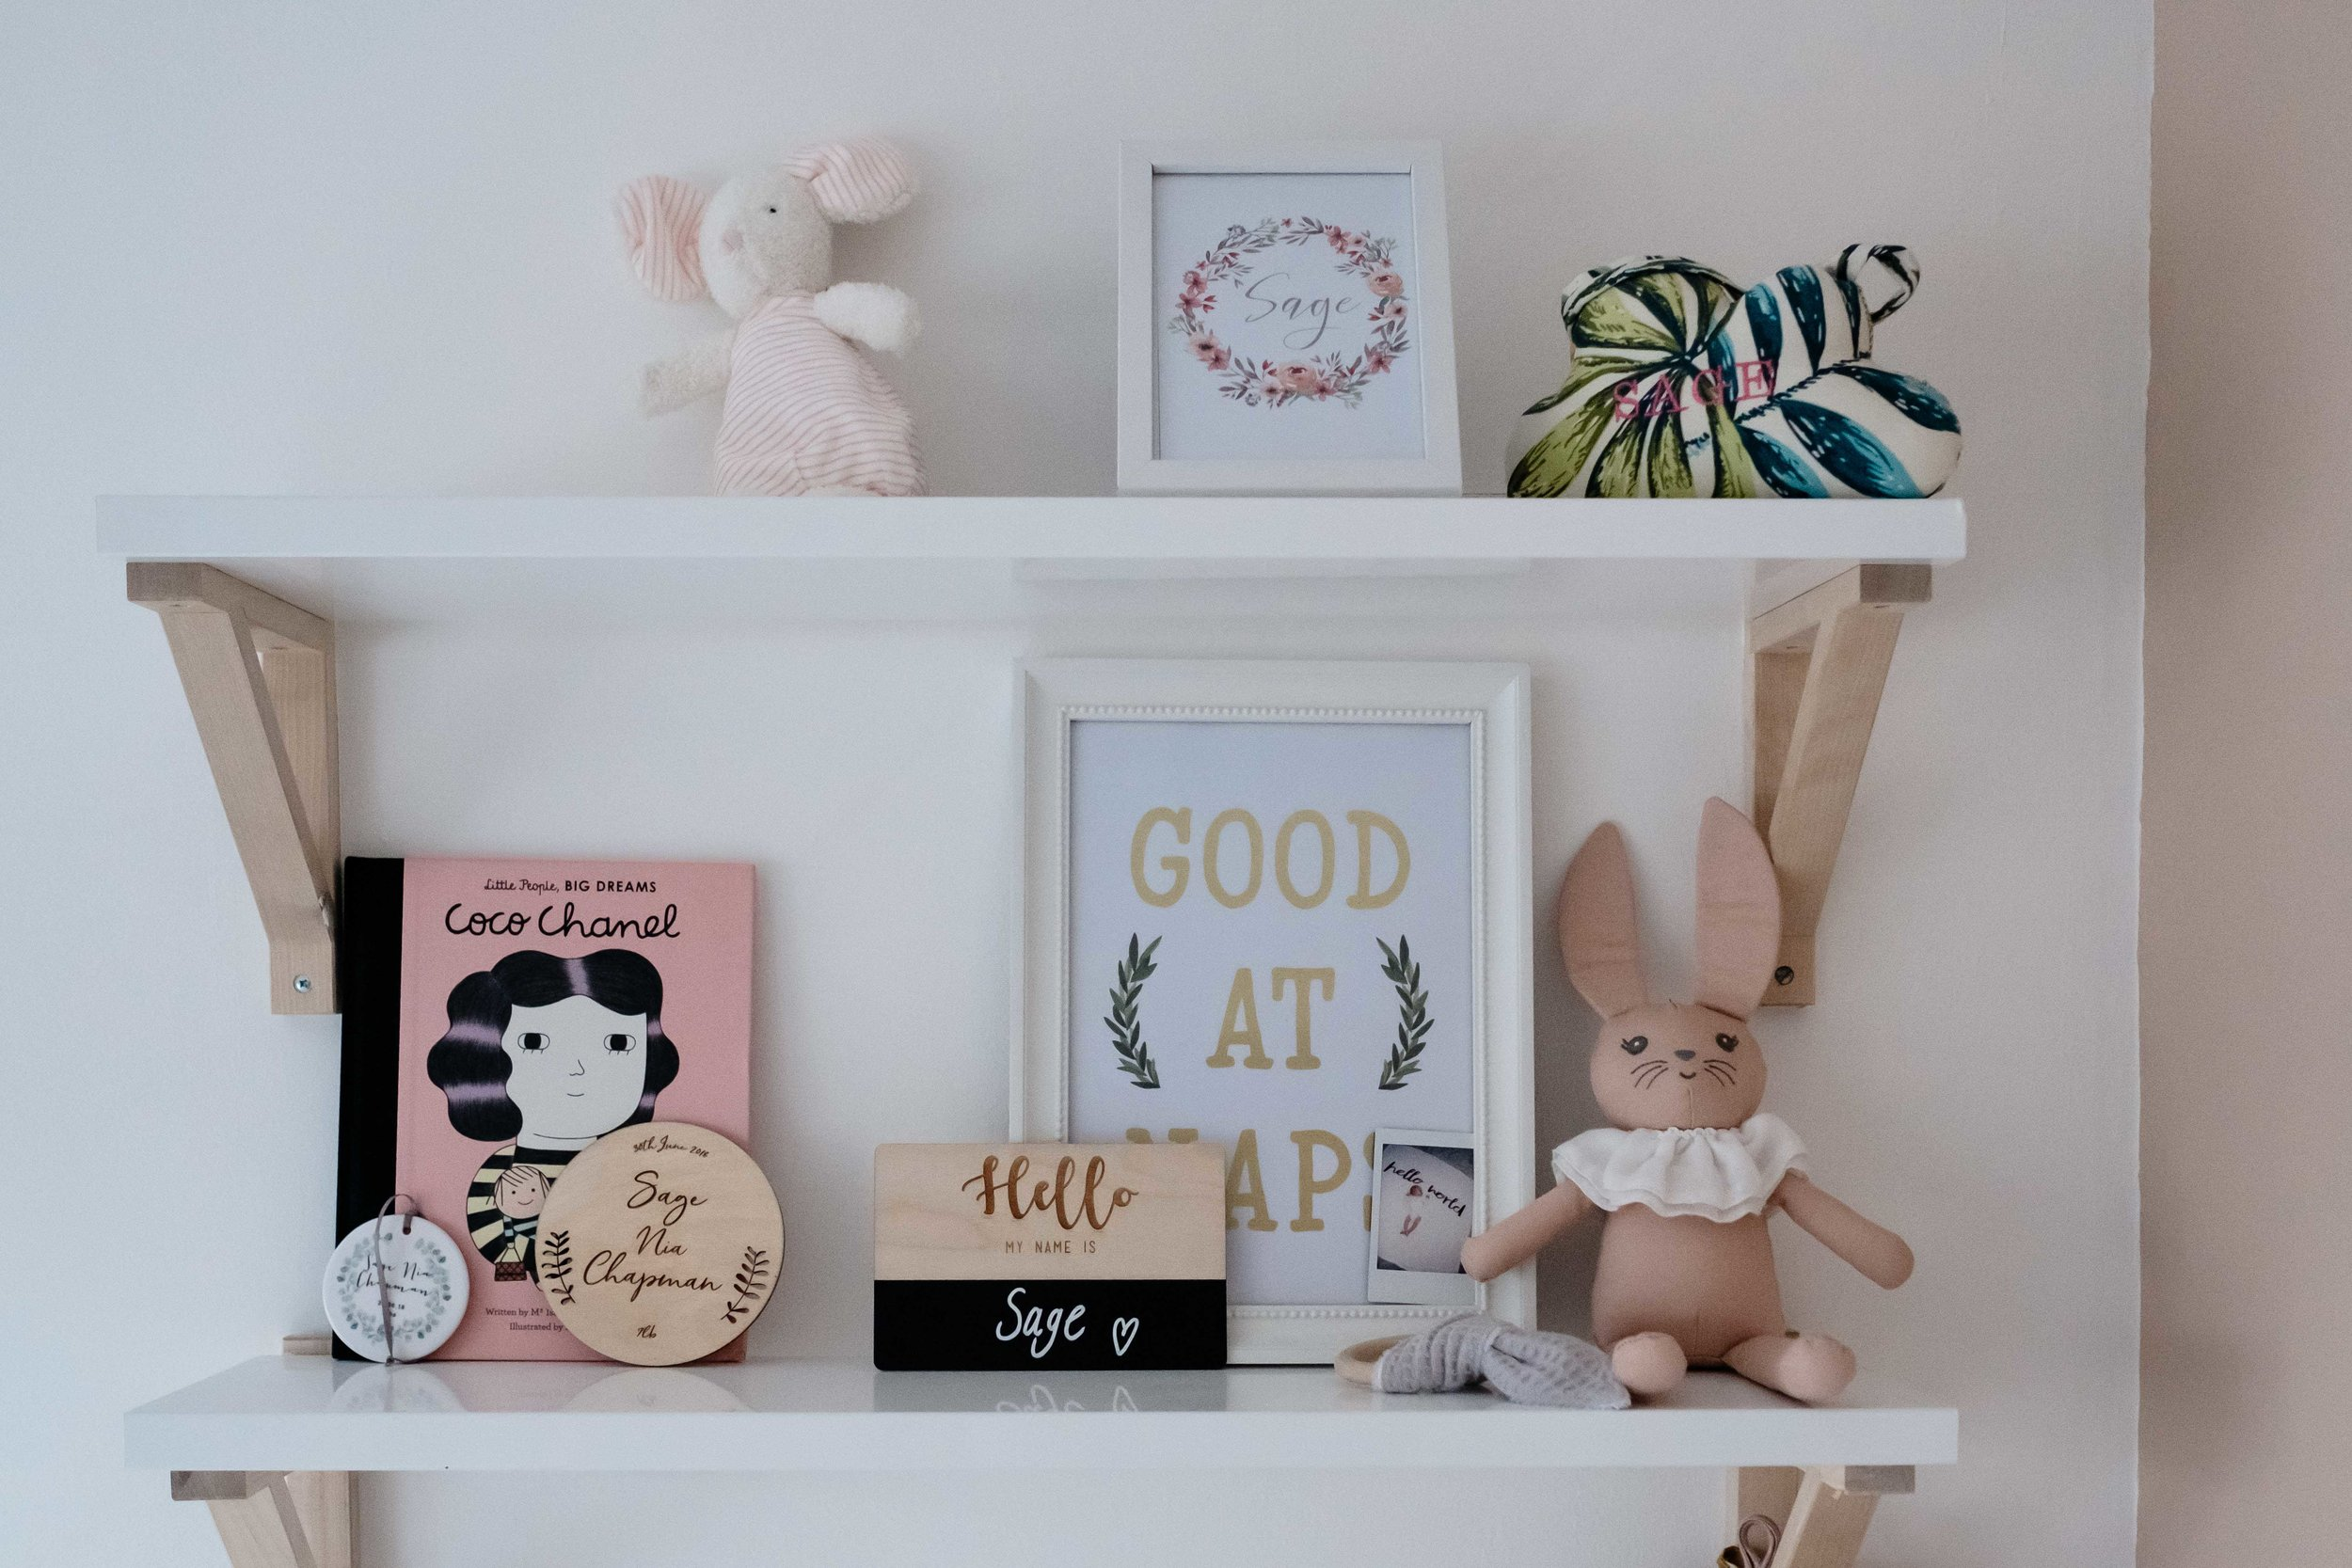 Baby girl's bedroom shelving with contemporary reading materials